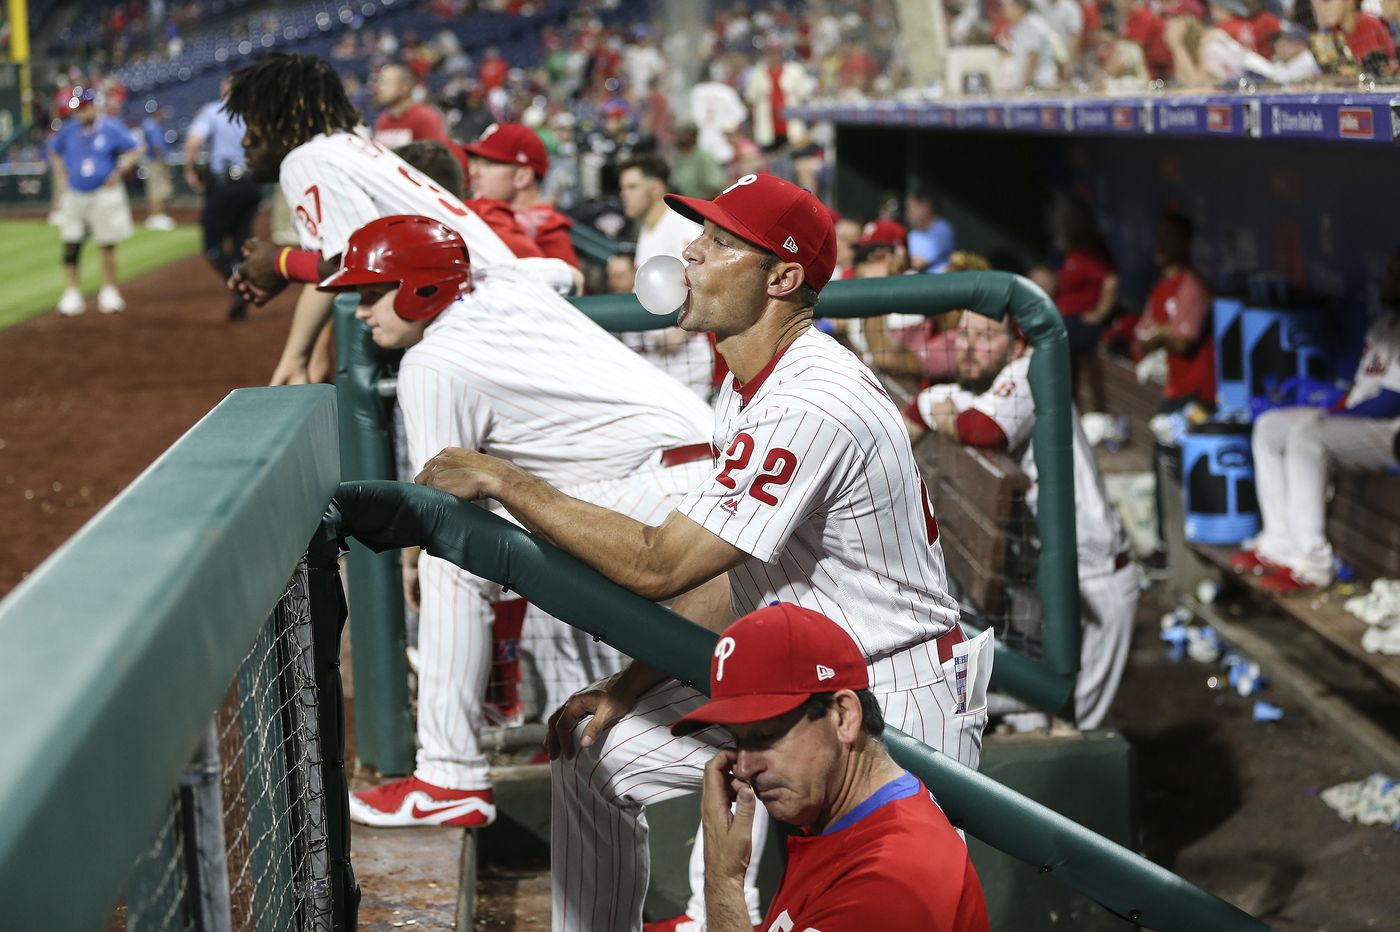 Phillies manager Gabe Kapler confident that free agents will want to play for him